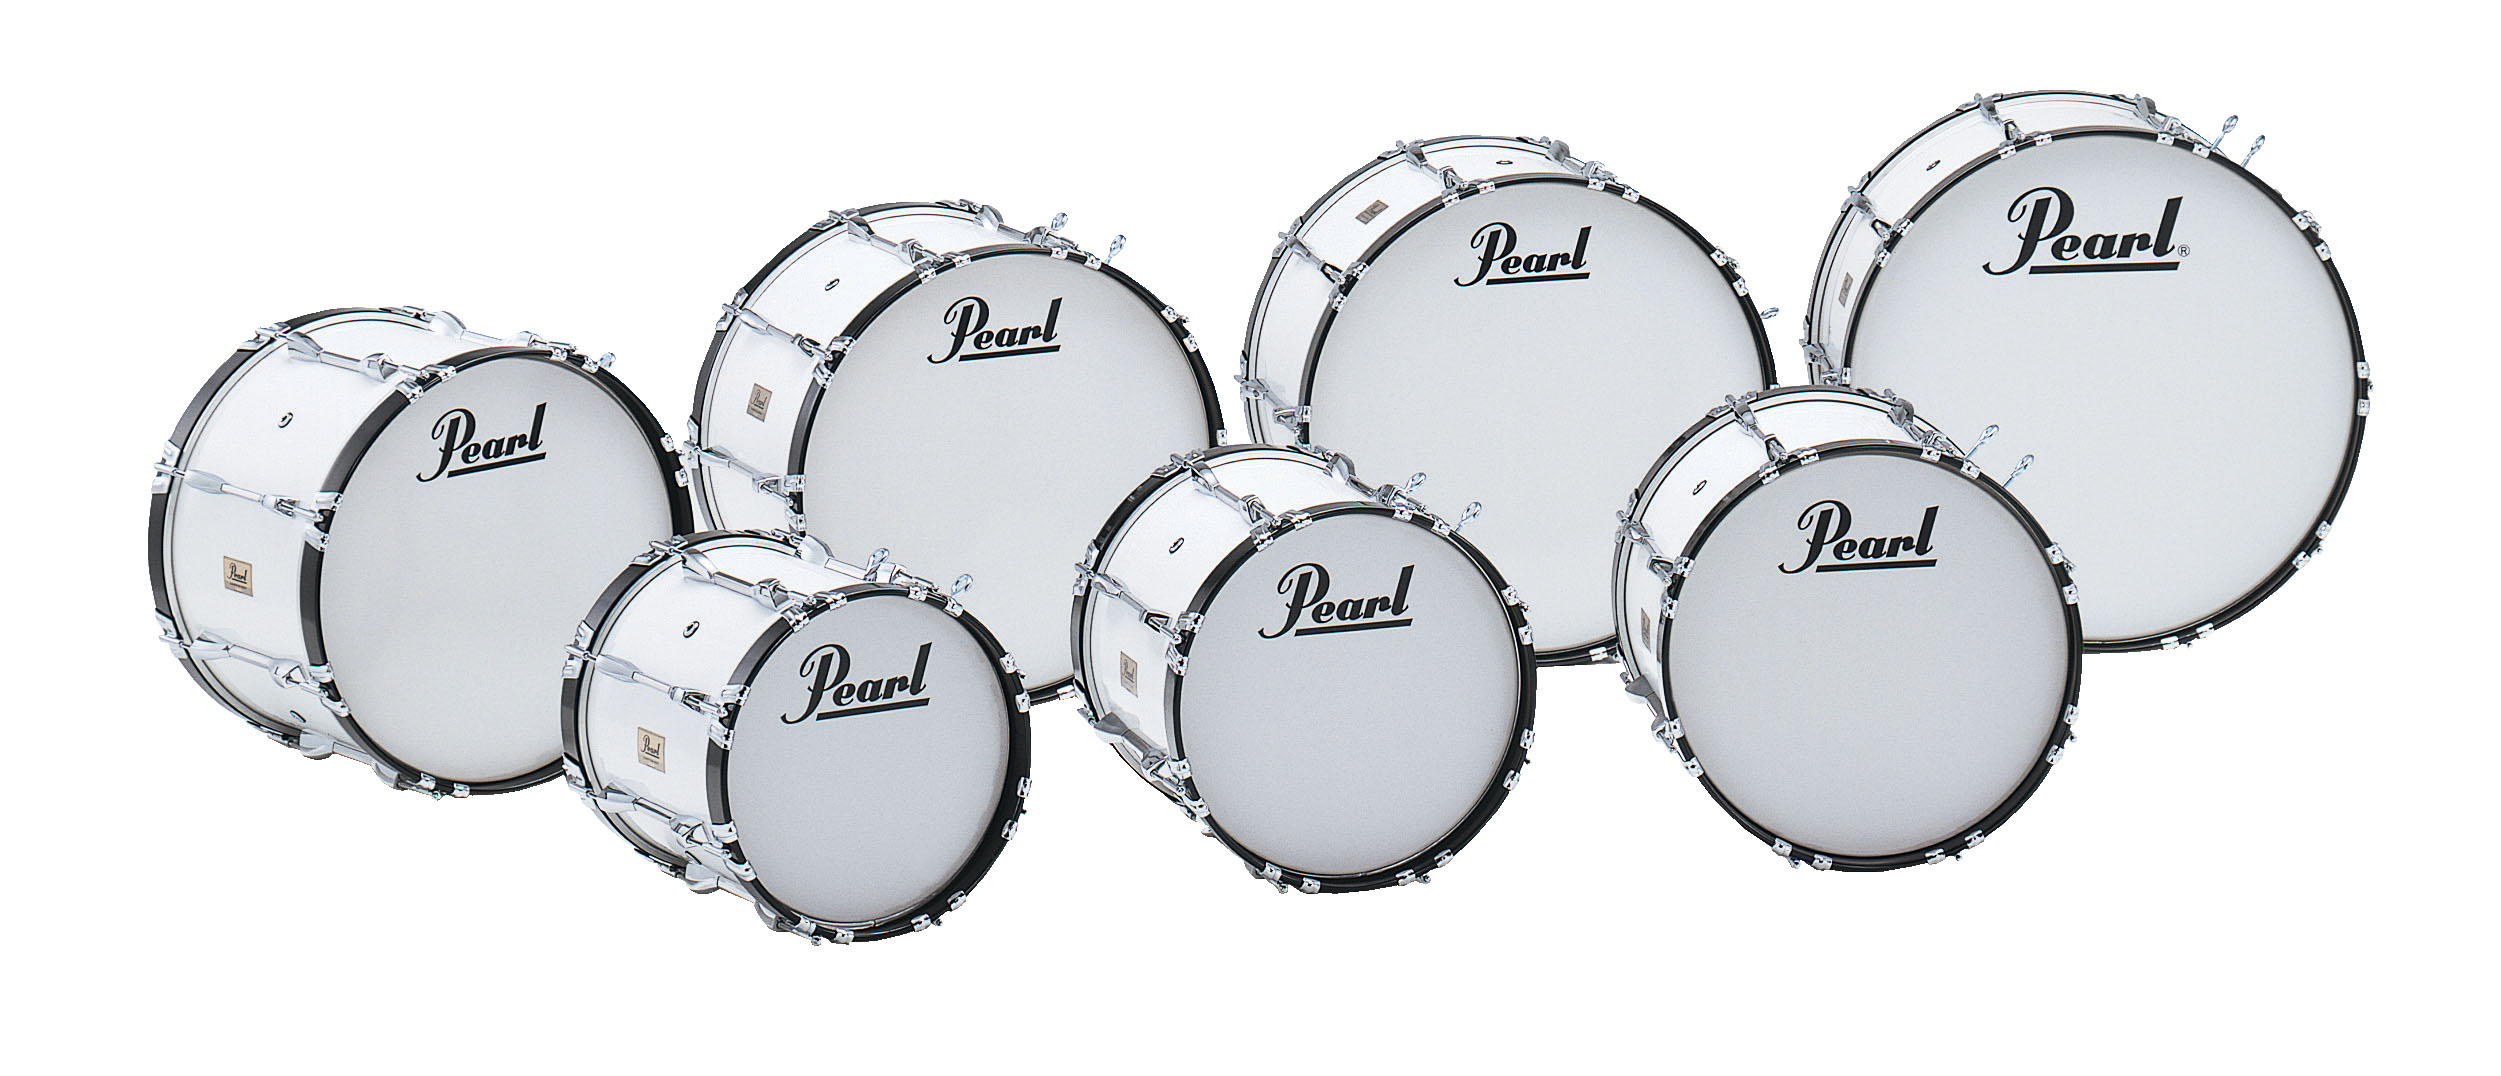 Pearl Drum Skins/Heads